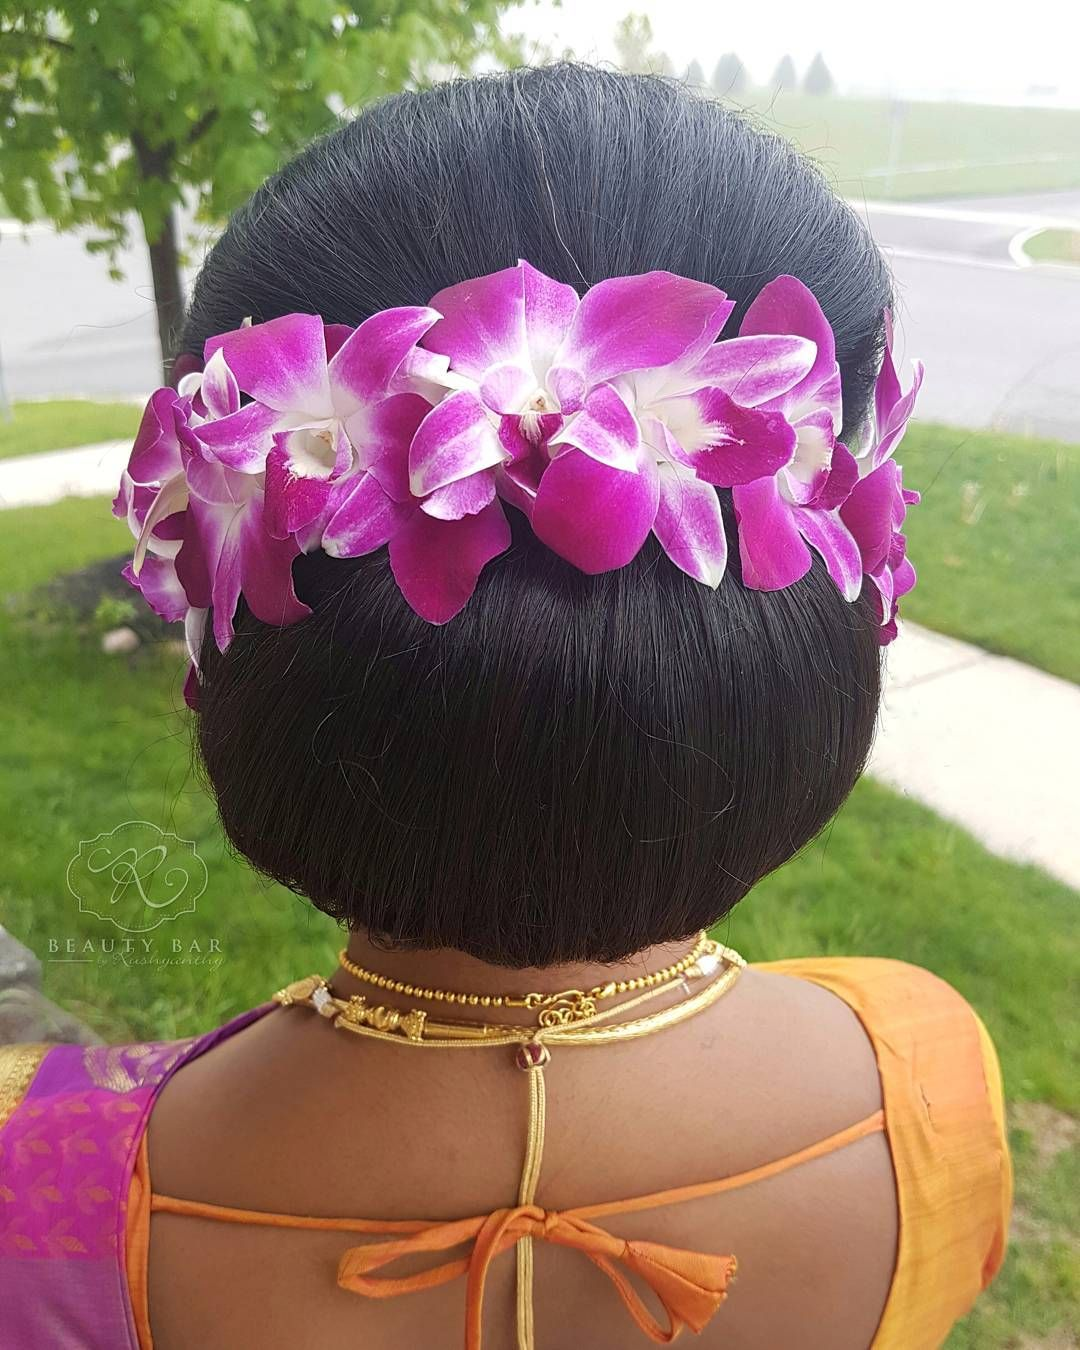 Beautiful Fresh Orchid Flowers On A Classic Low Bun Updo With Naturally Teased Hair On Top Love How It Turned Out Teased Hair Low Bun Updo Brunette Hair Color